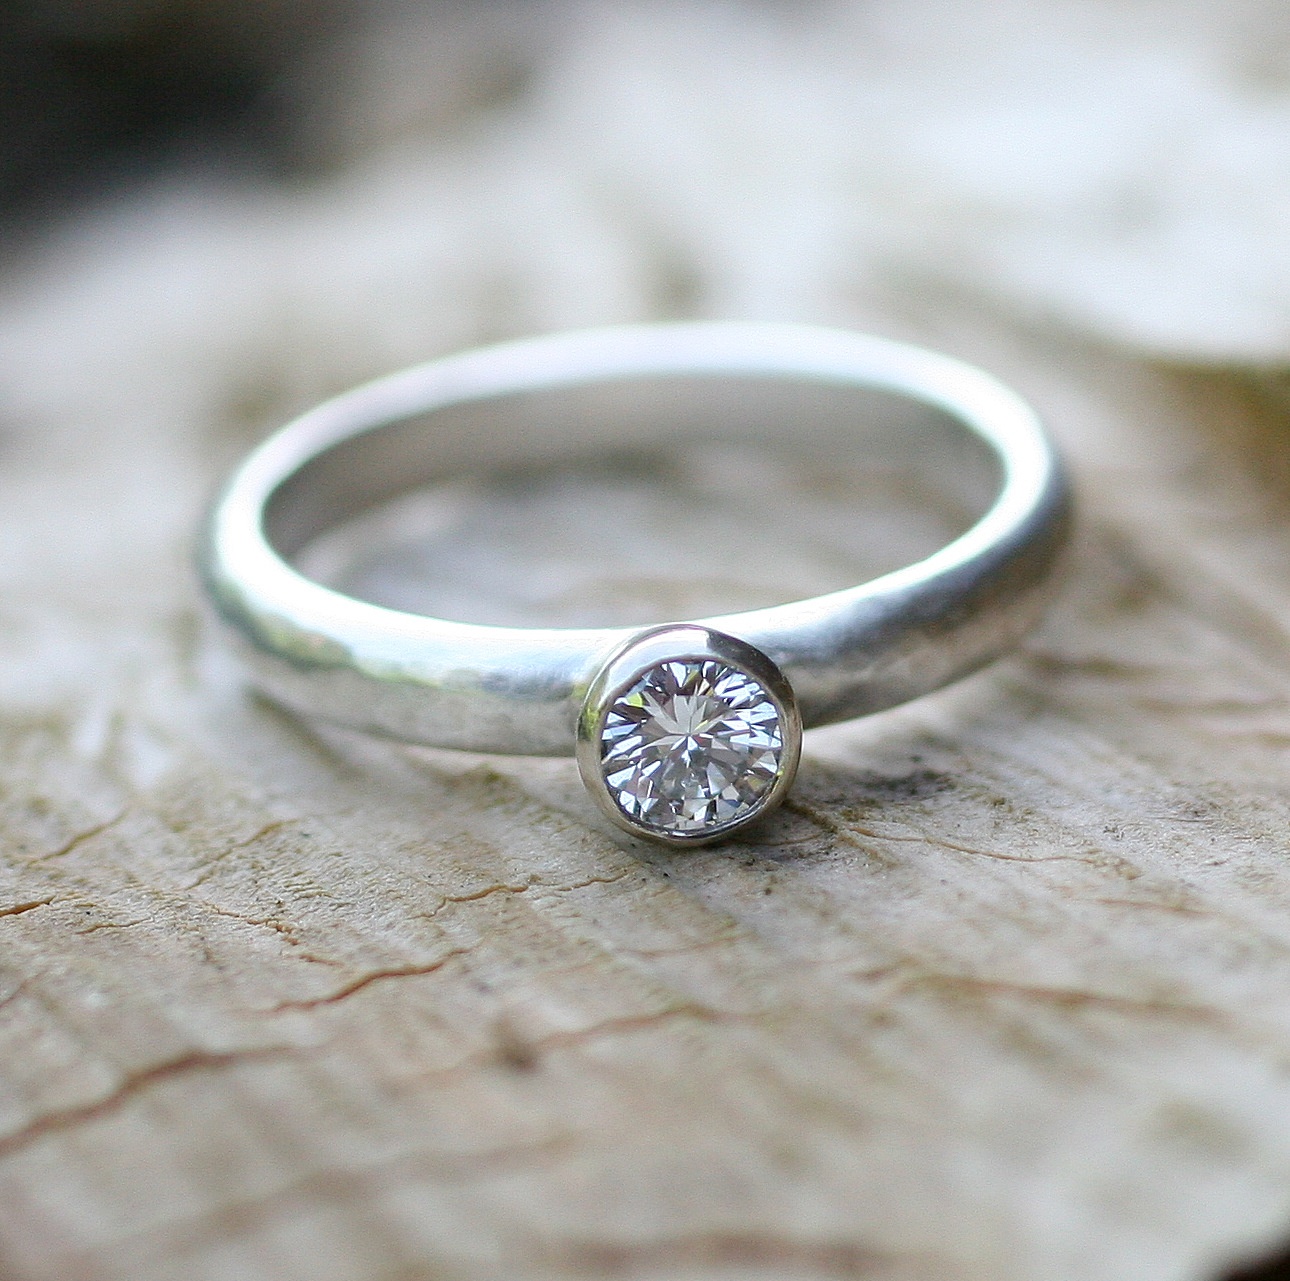 Silver band & 9ct white gold setting